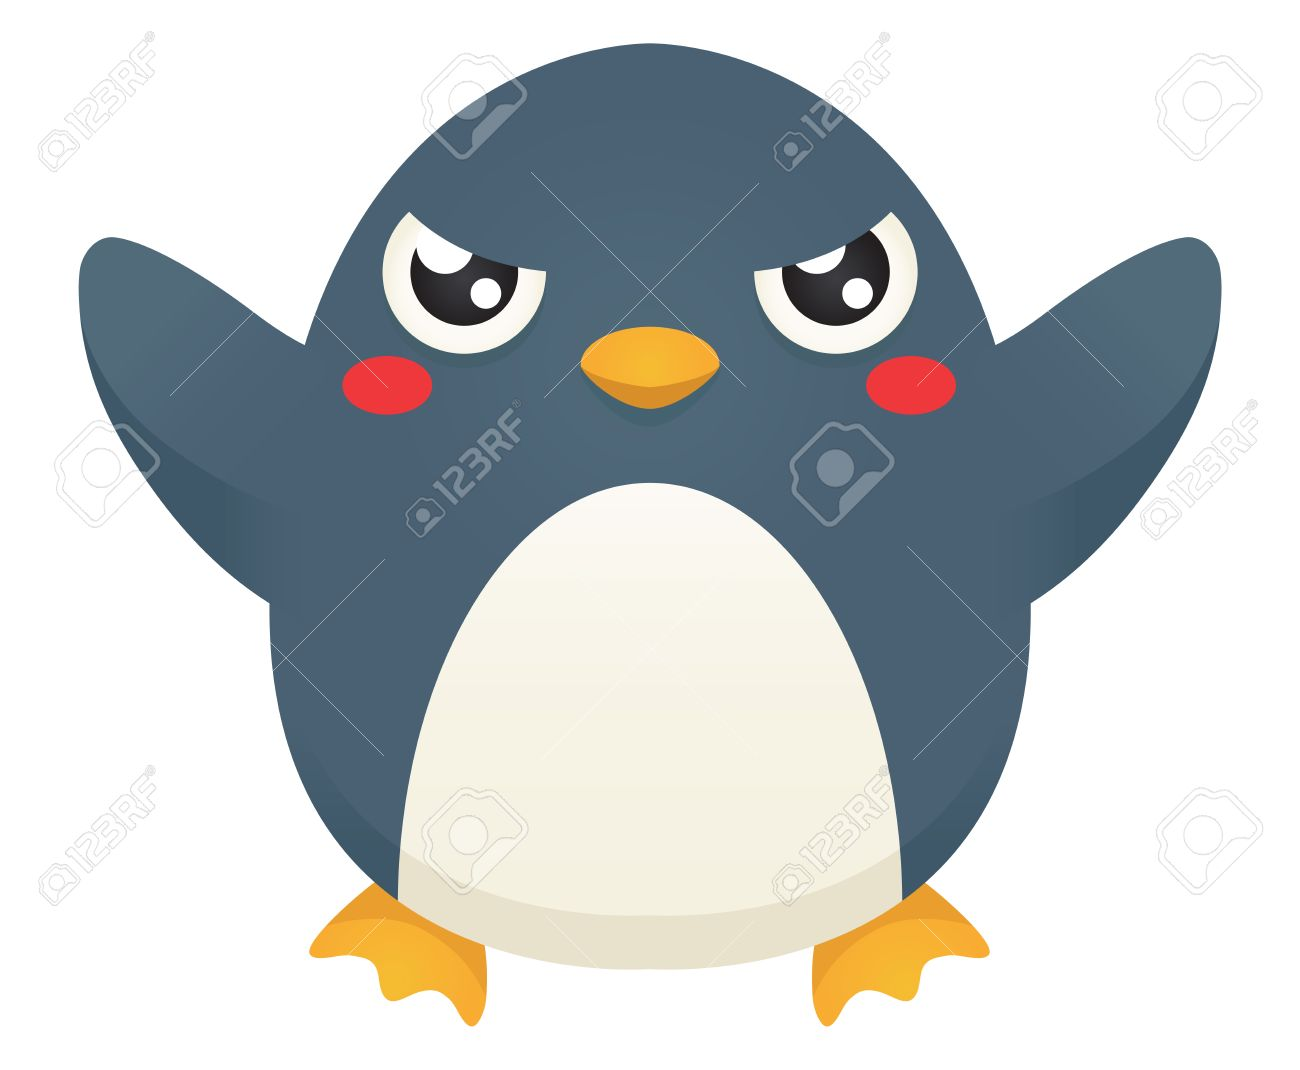 illustration of a cute cartoon penguin with an angry expression